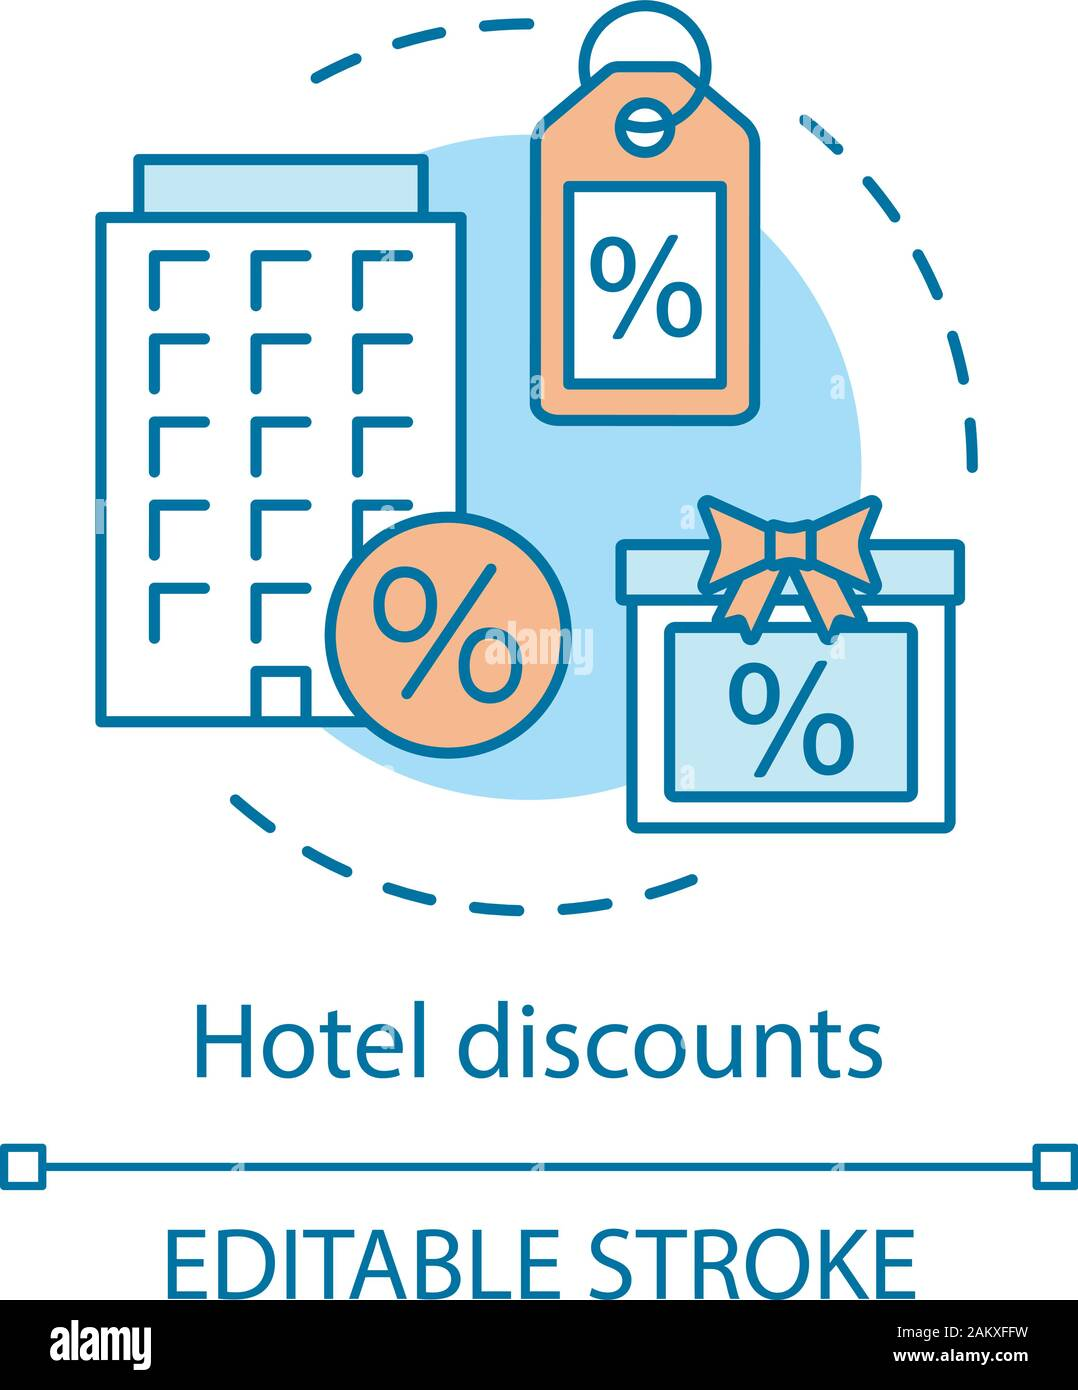 Hotel Discounts Concept Icon Hostel Dormitory Last Minute Hotel Deal Special Offer Low Price Cheap Room Idea Thin Line Illustration Vector Isol Stock Vector Image Art Alamy